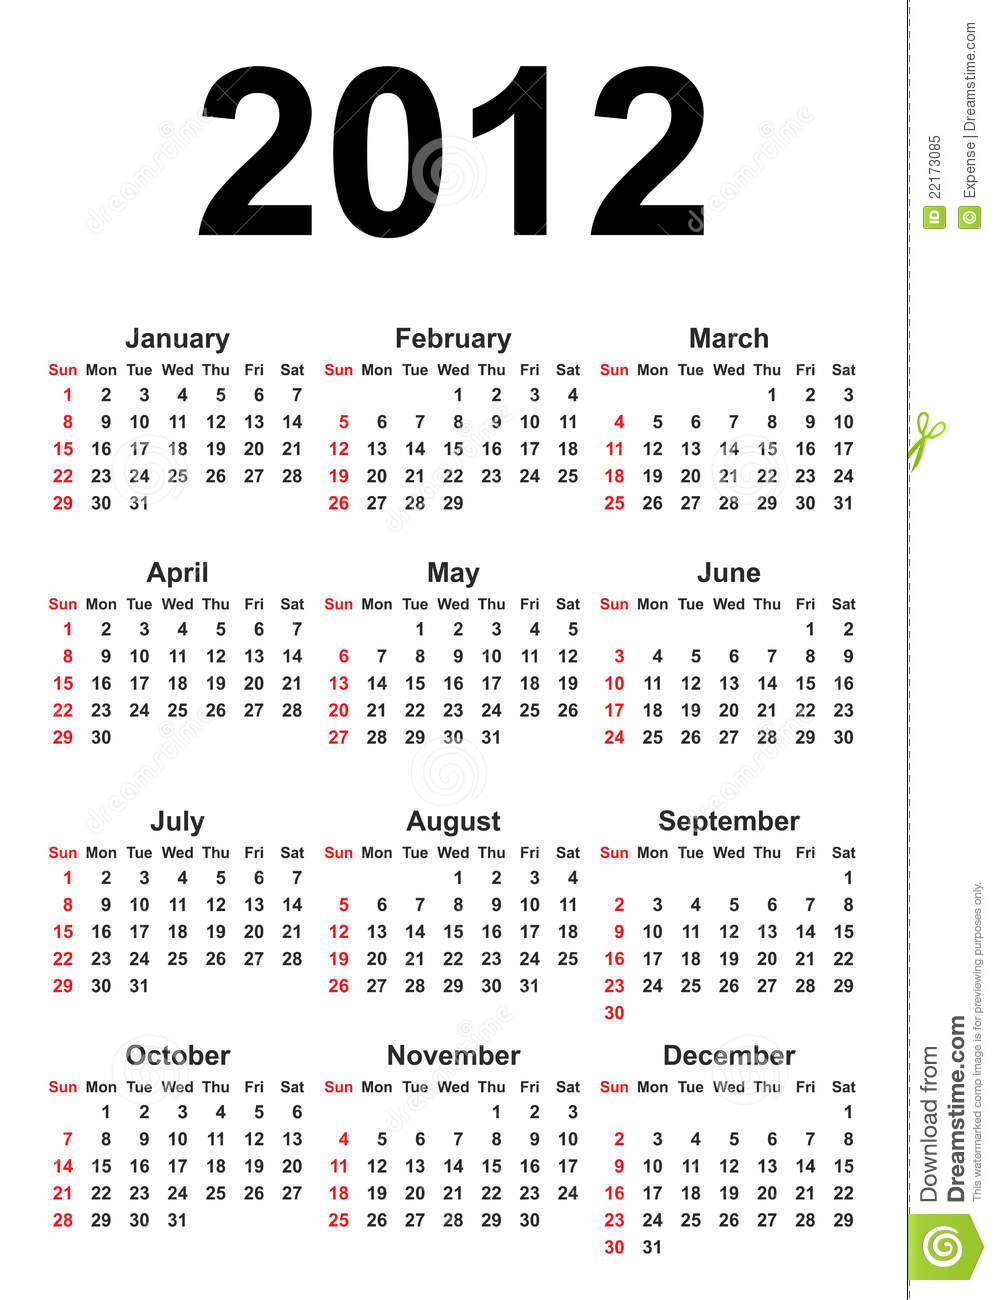 Full Calendar_2012 Royalty Free Stock Photo - Image: 22173085